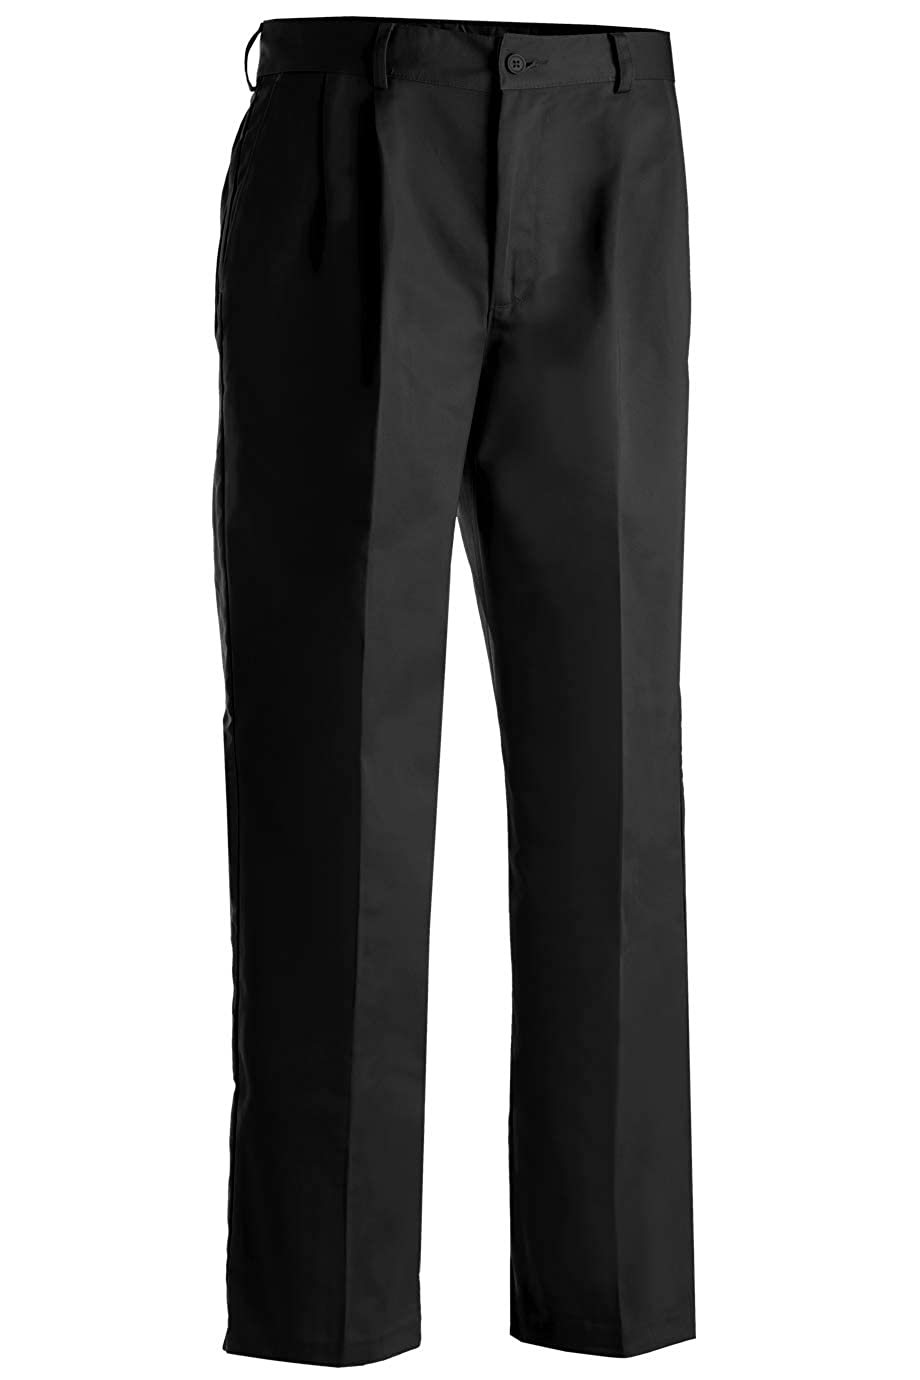 Edwards Mens Utility Pleated Front Chino Pant